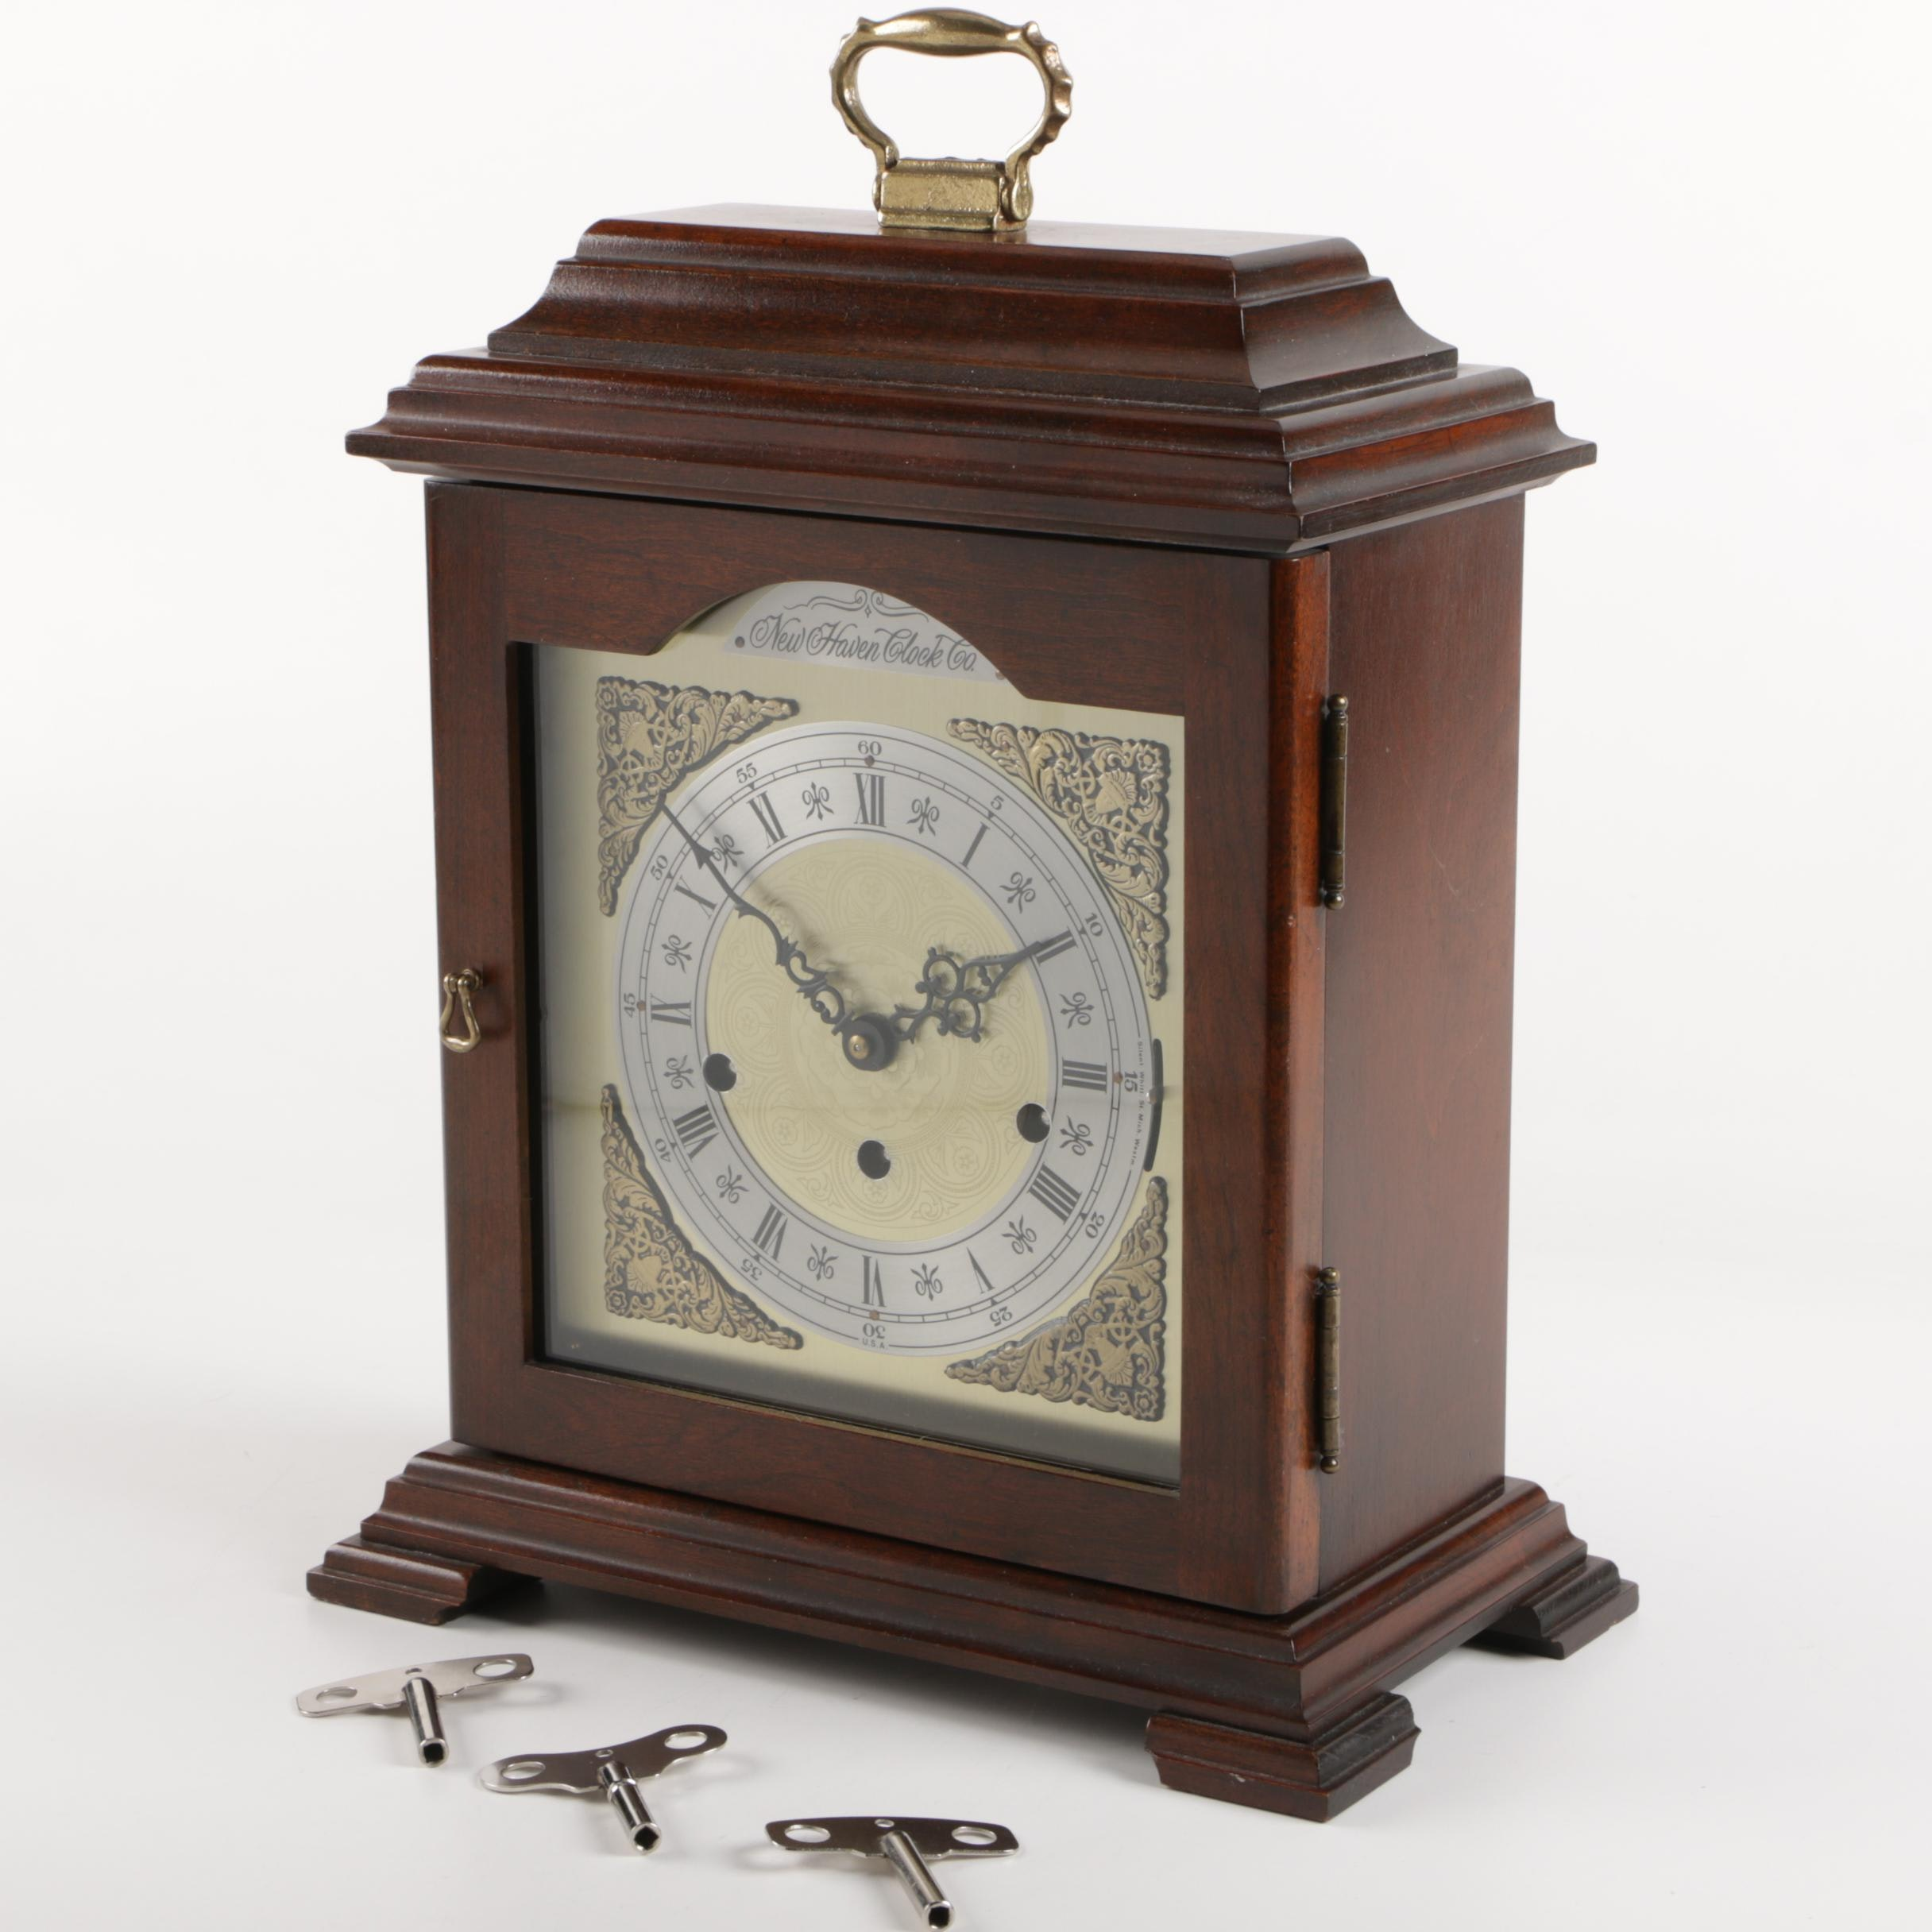 New Haven Clock Co. Carriage Clock